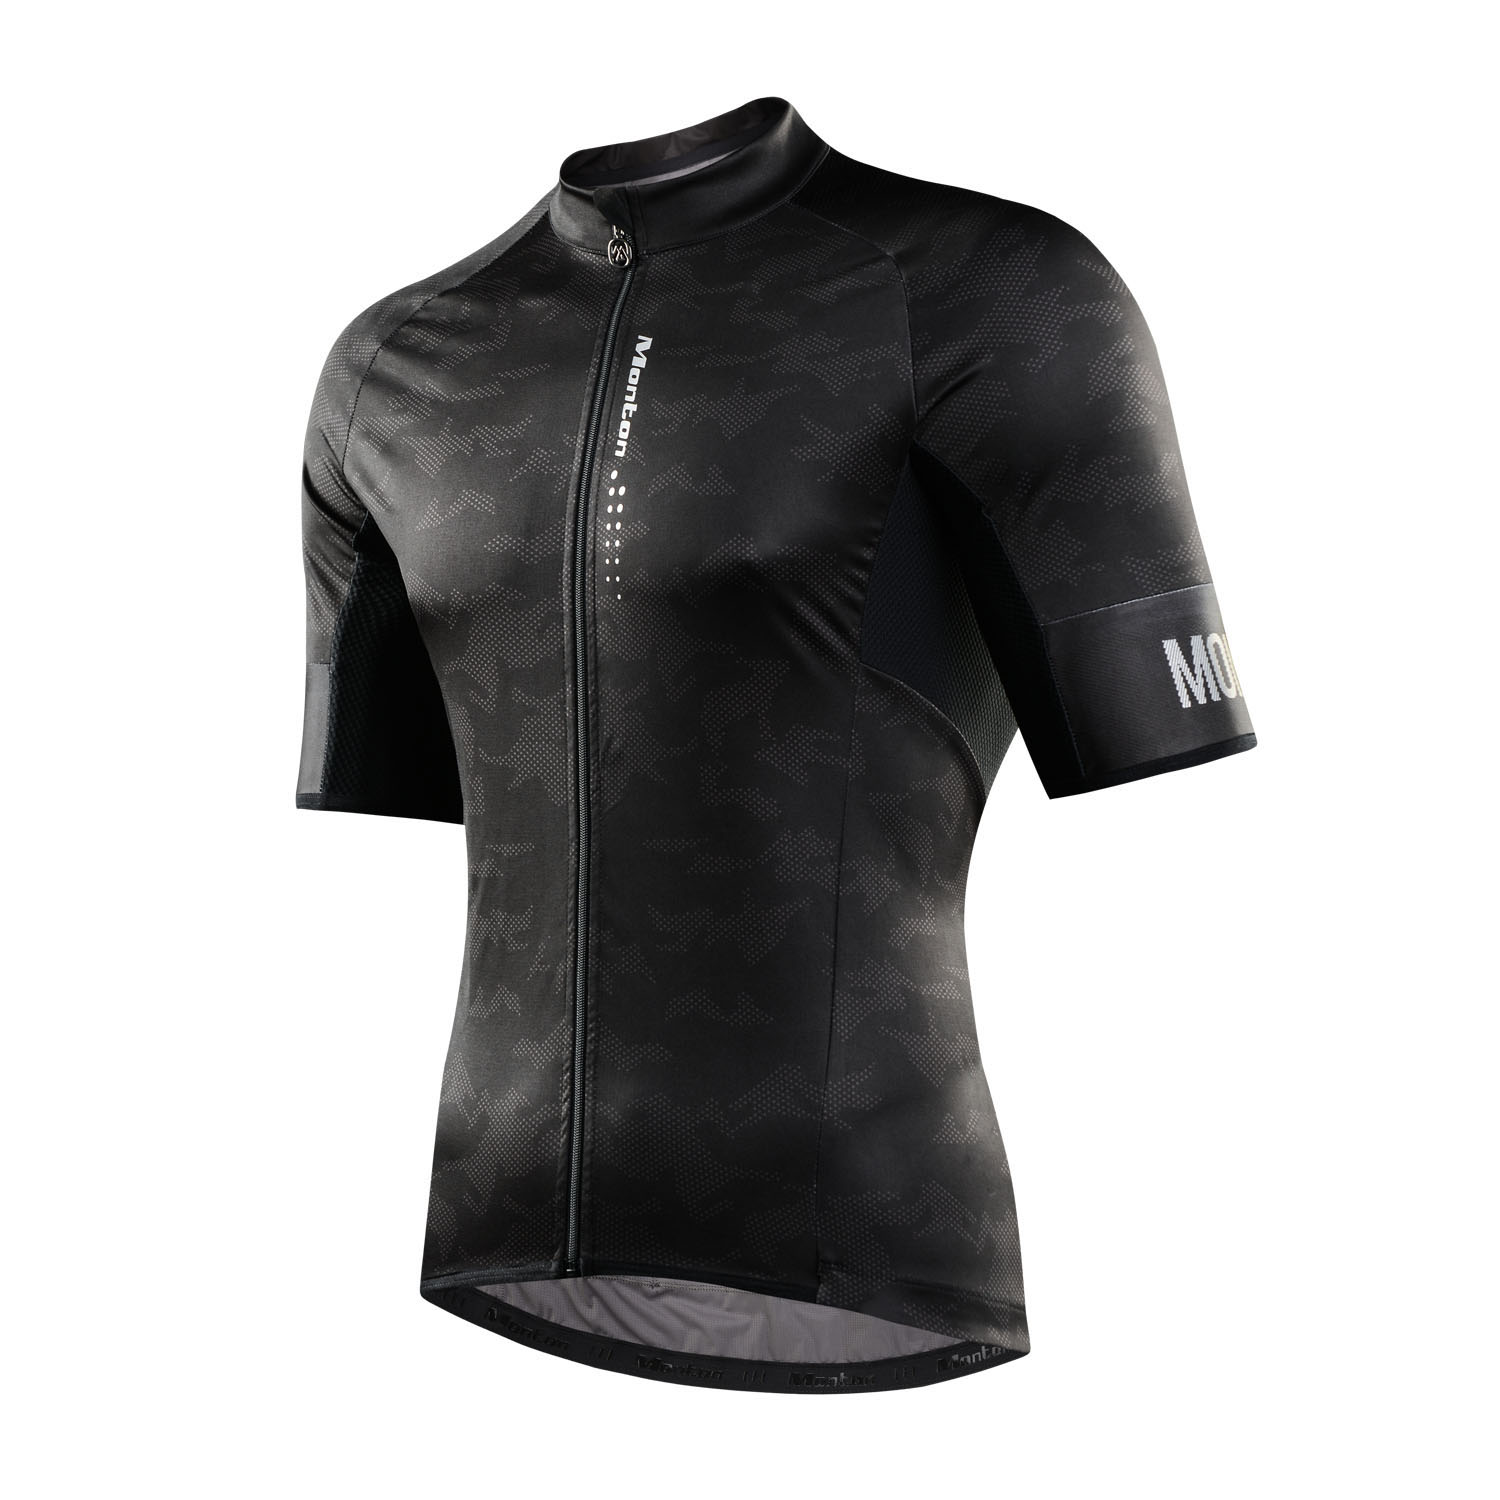 The personalised classic and windproof cycling jersey